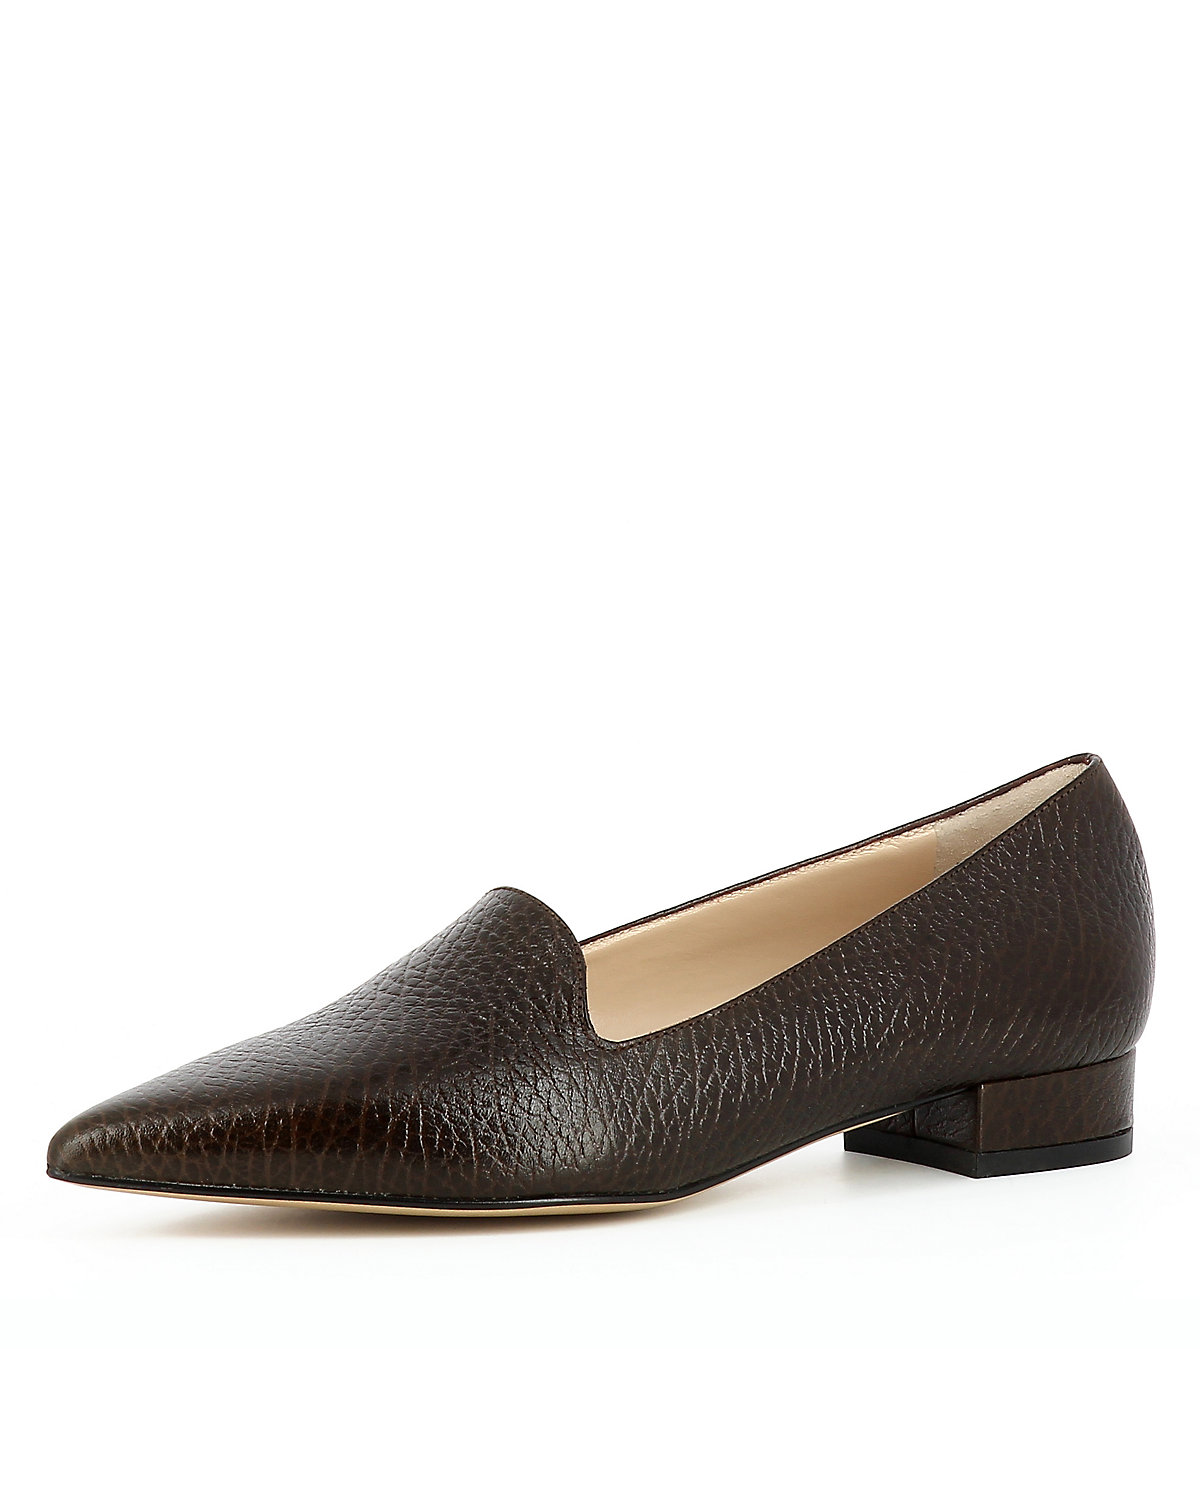 Evita Shoes, Shoes, Shoes, Loafers FRANCA, braun 051e3c